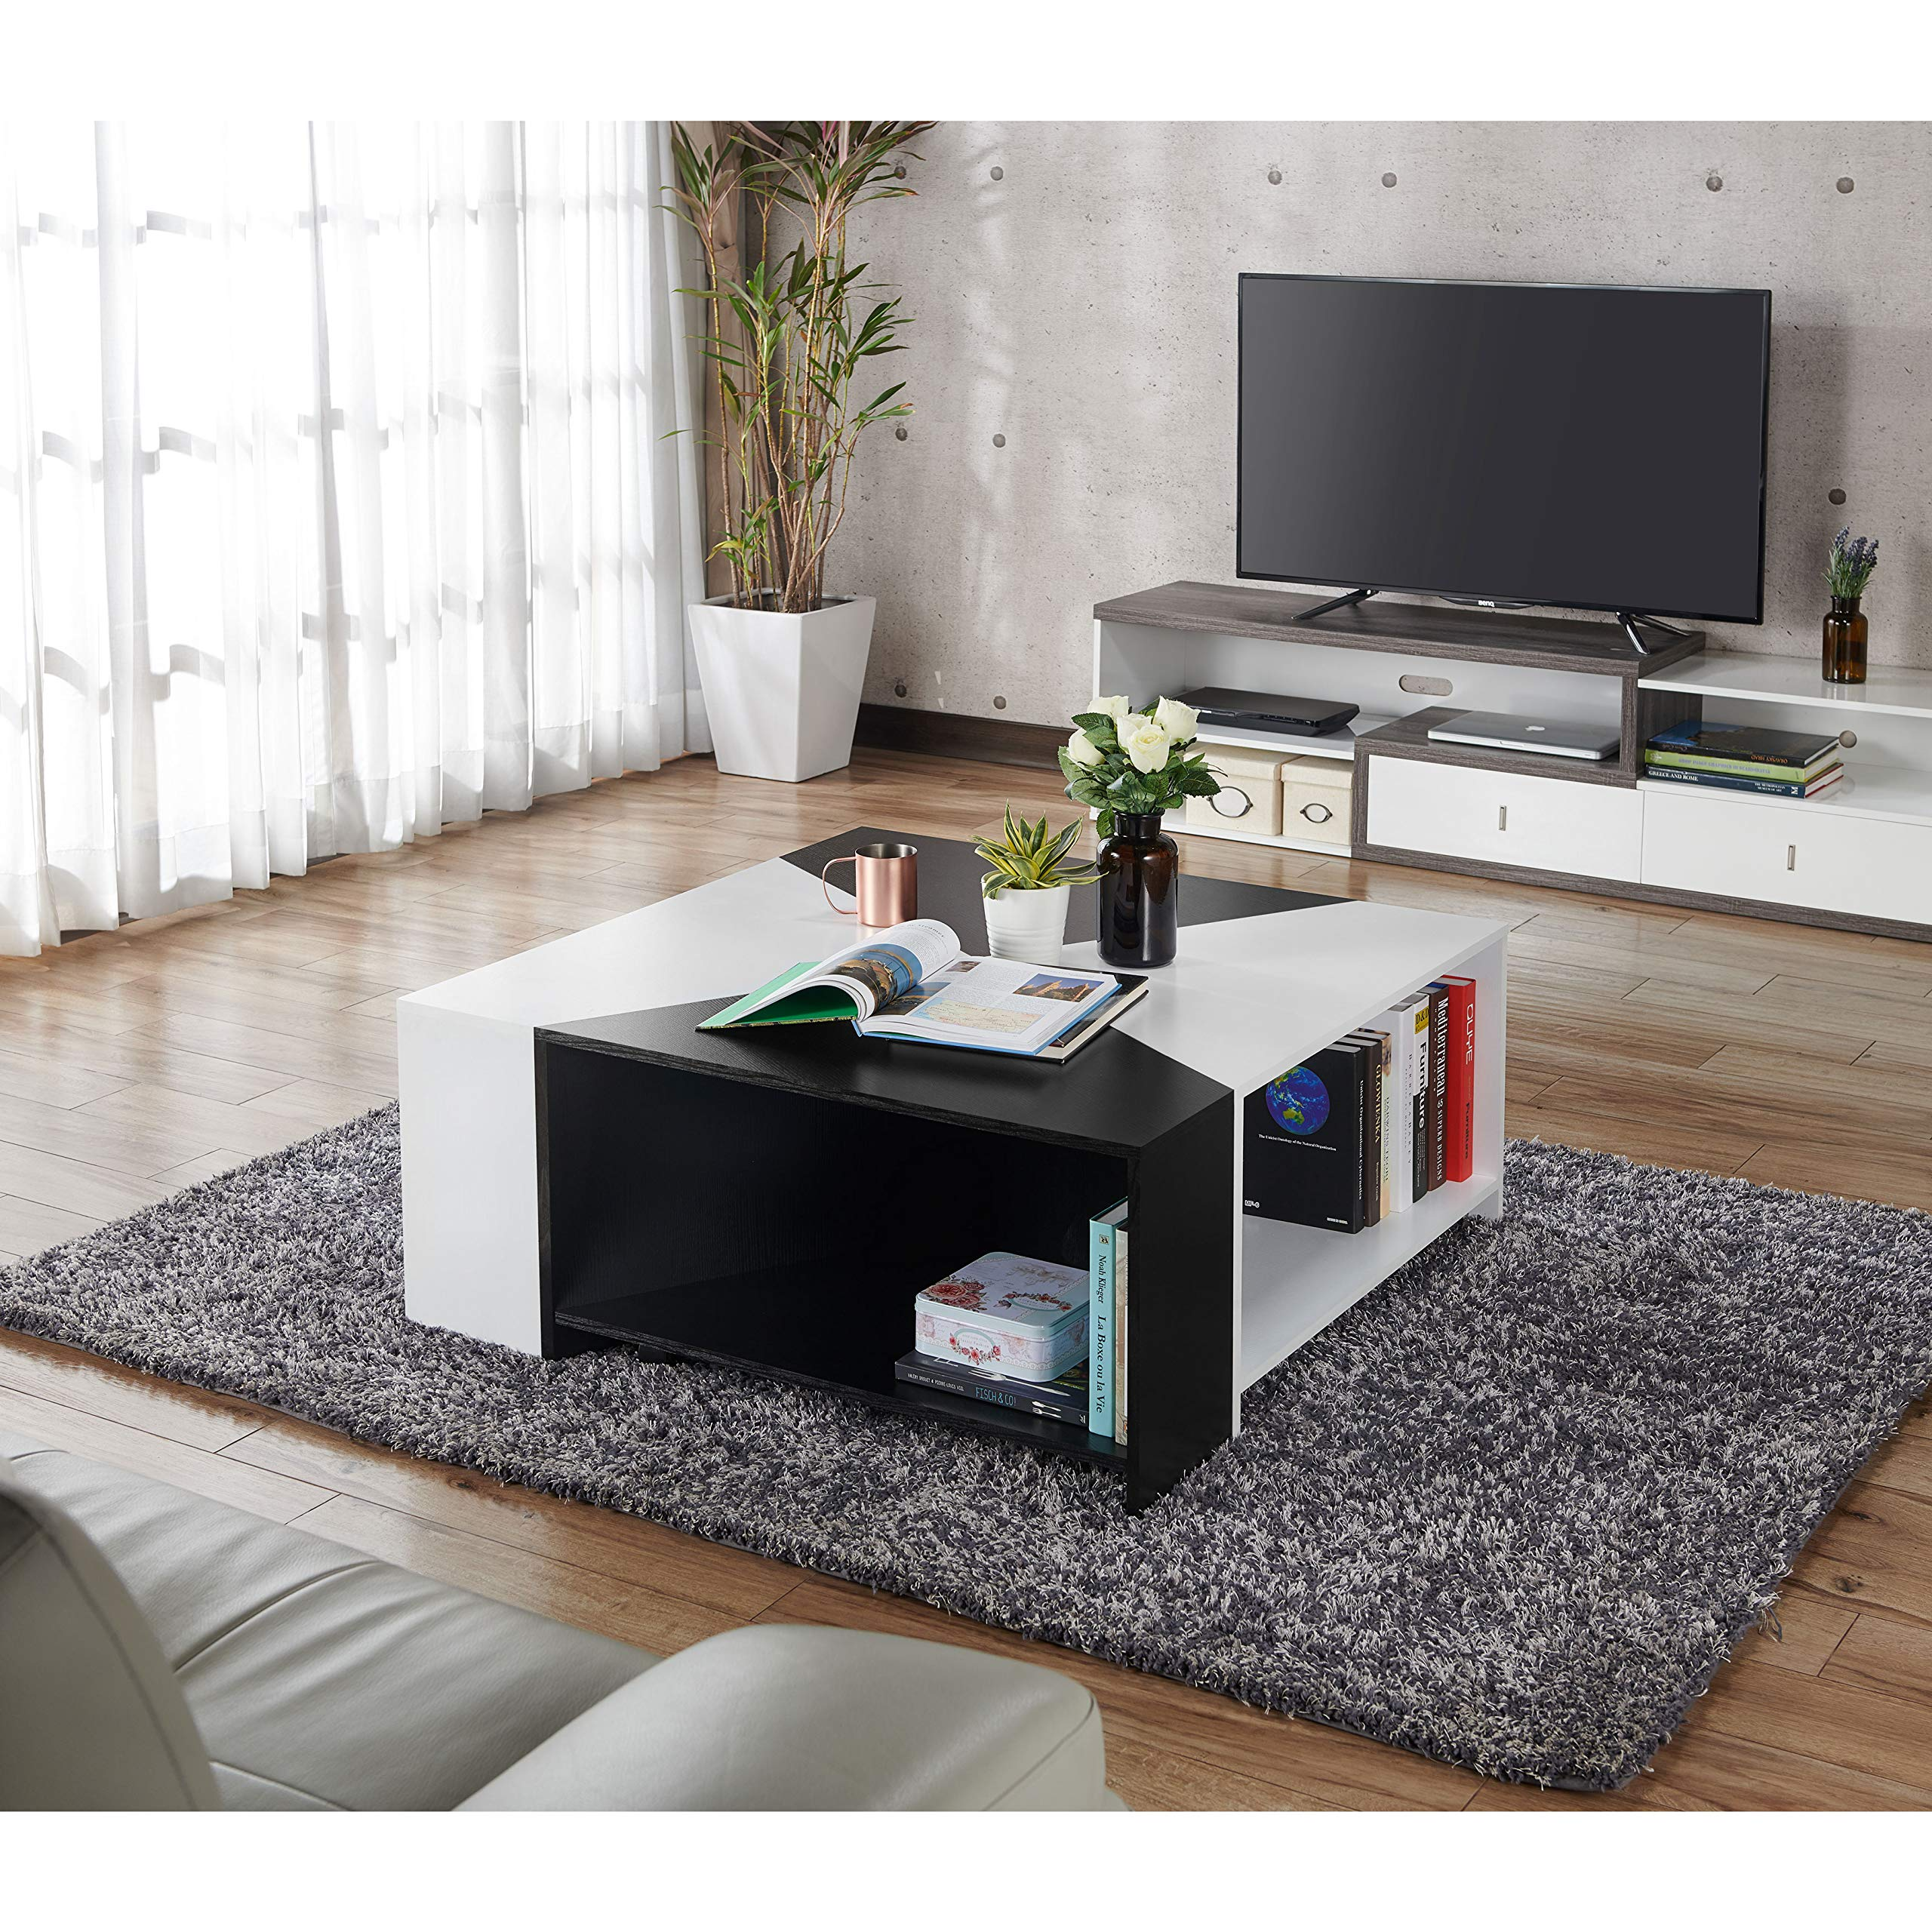 HOMES: Inside + Out Melaina Modern Modular Coffee Table by HOMES: Inside + Out